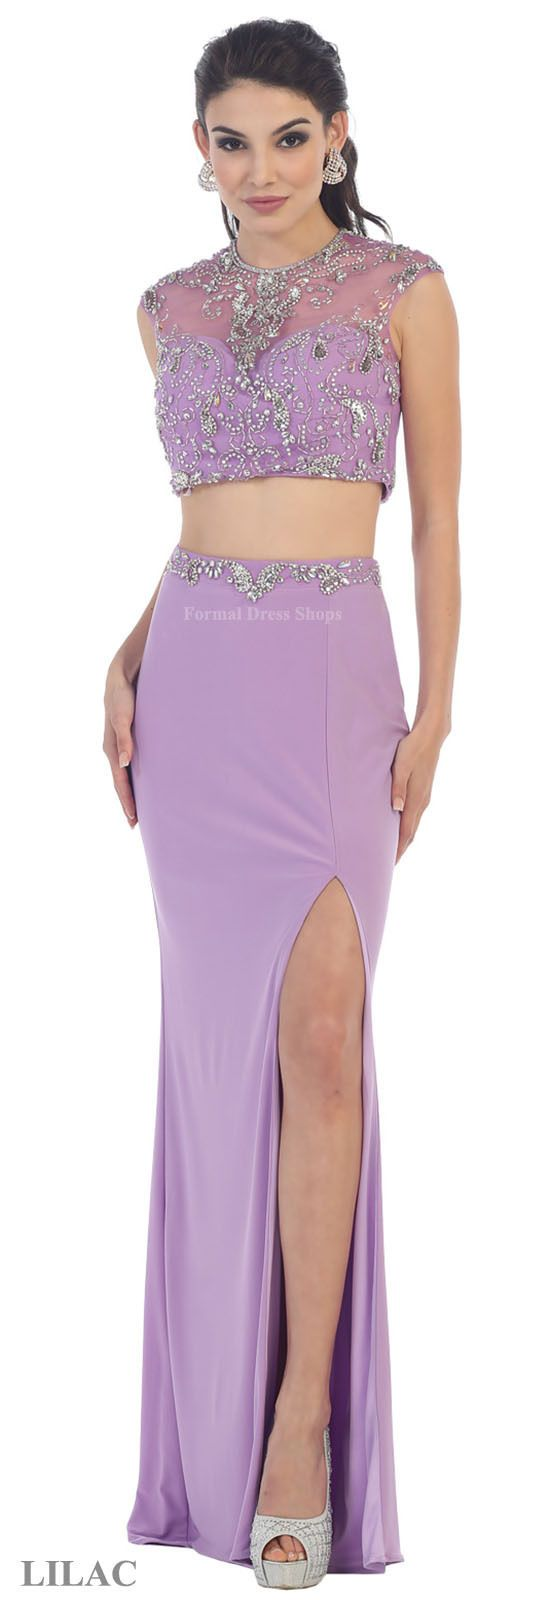 Sale two piece stretchy prom dance dress sweet party sexy